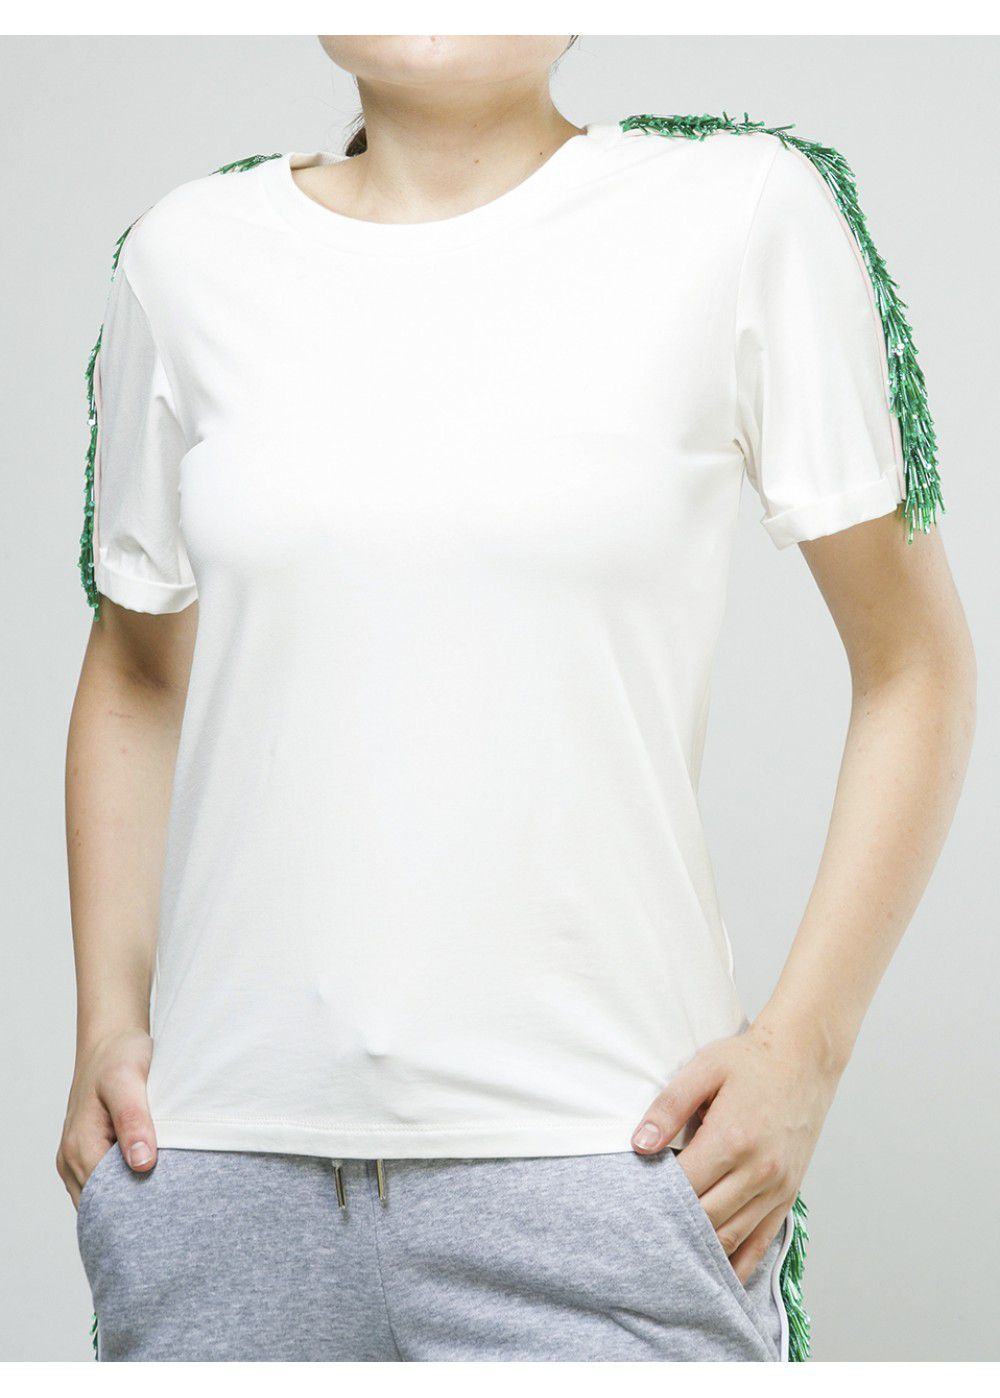 Zayan The Label Blake T-Shirt in White